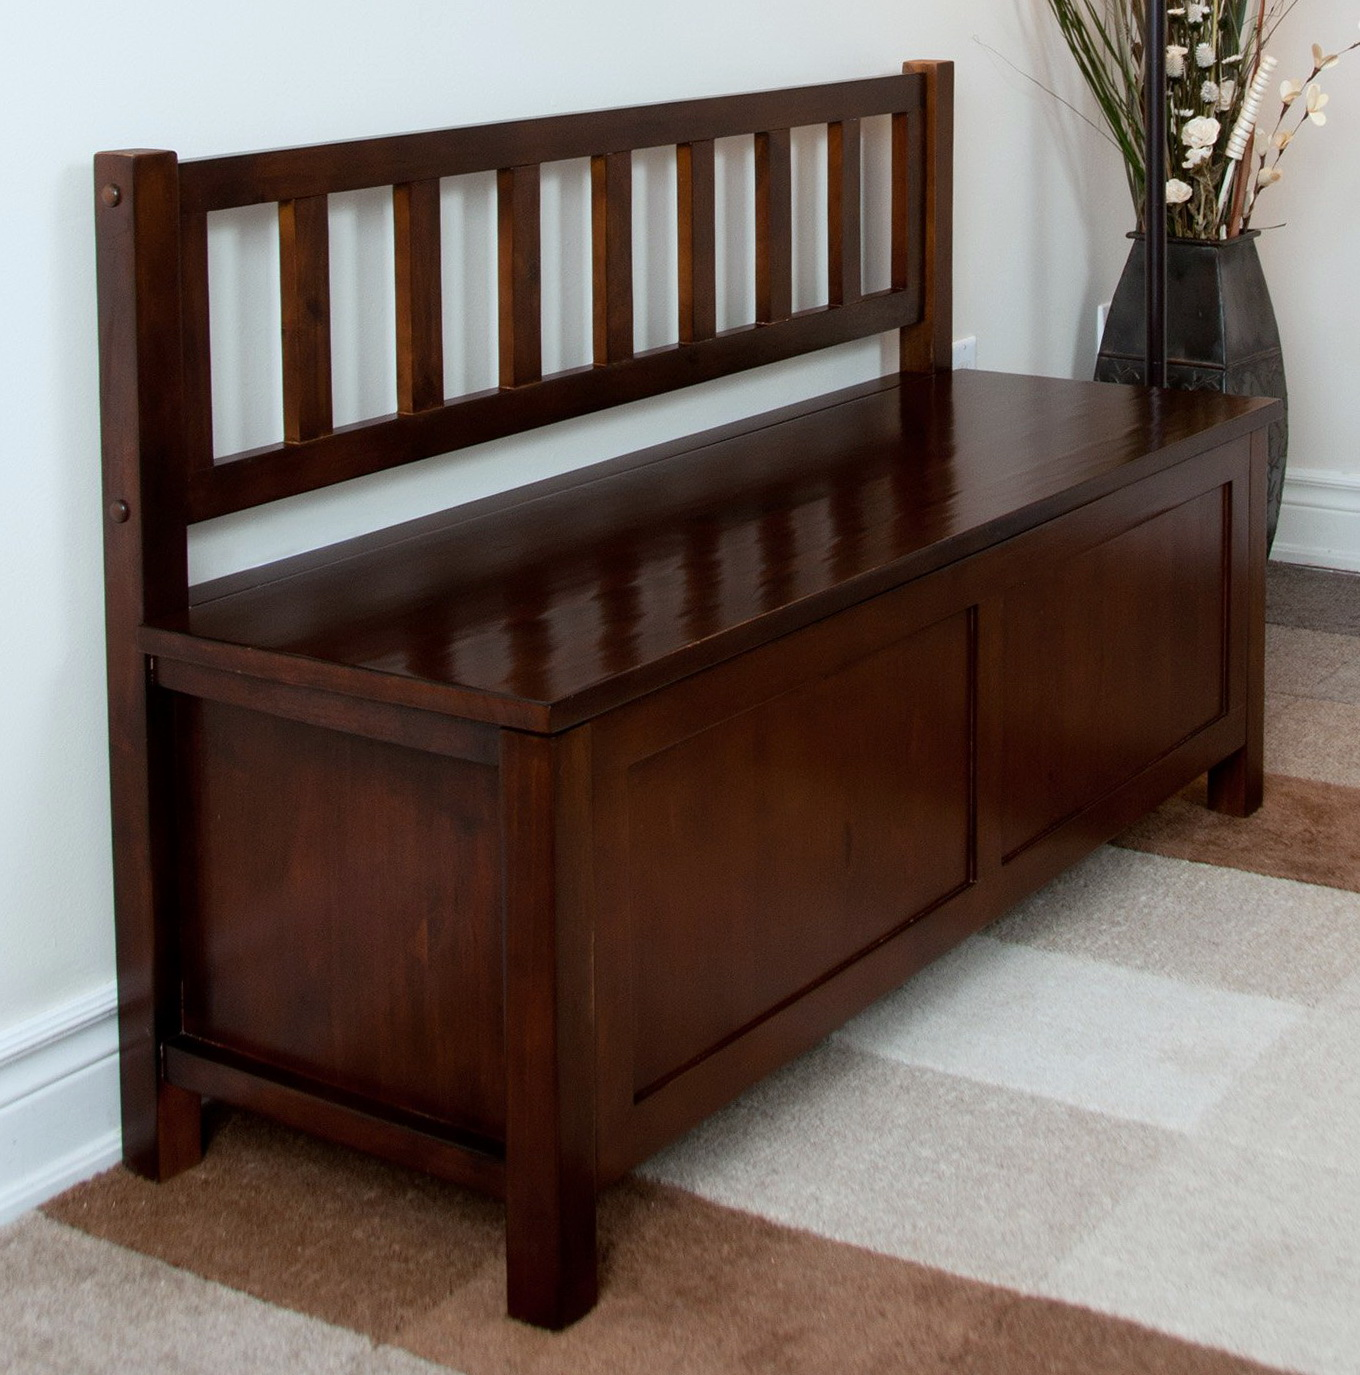 Entryway Benches For Sale Home Design Ideas